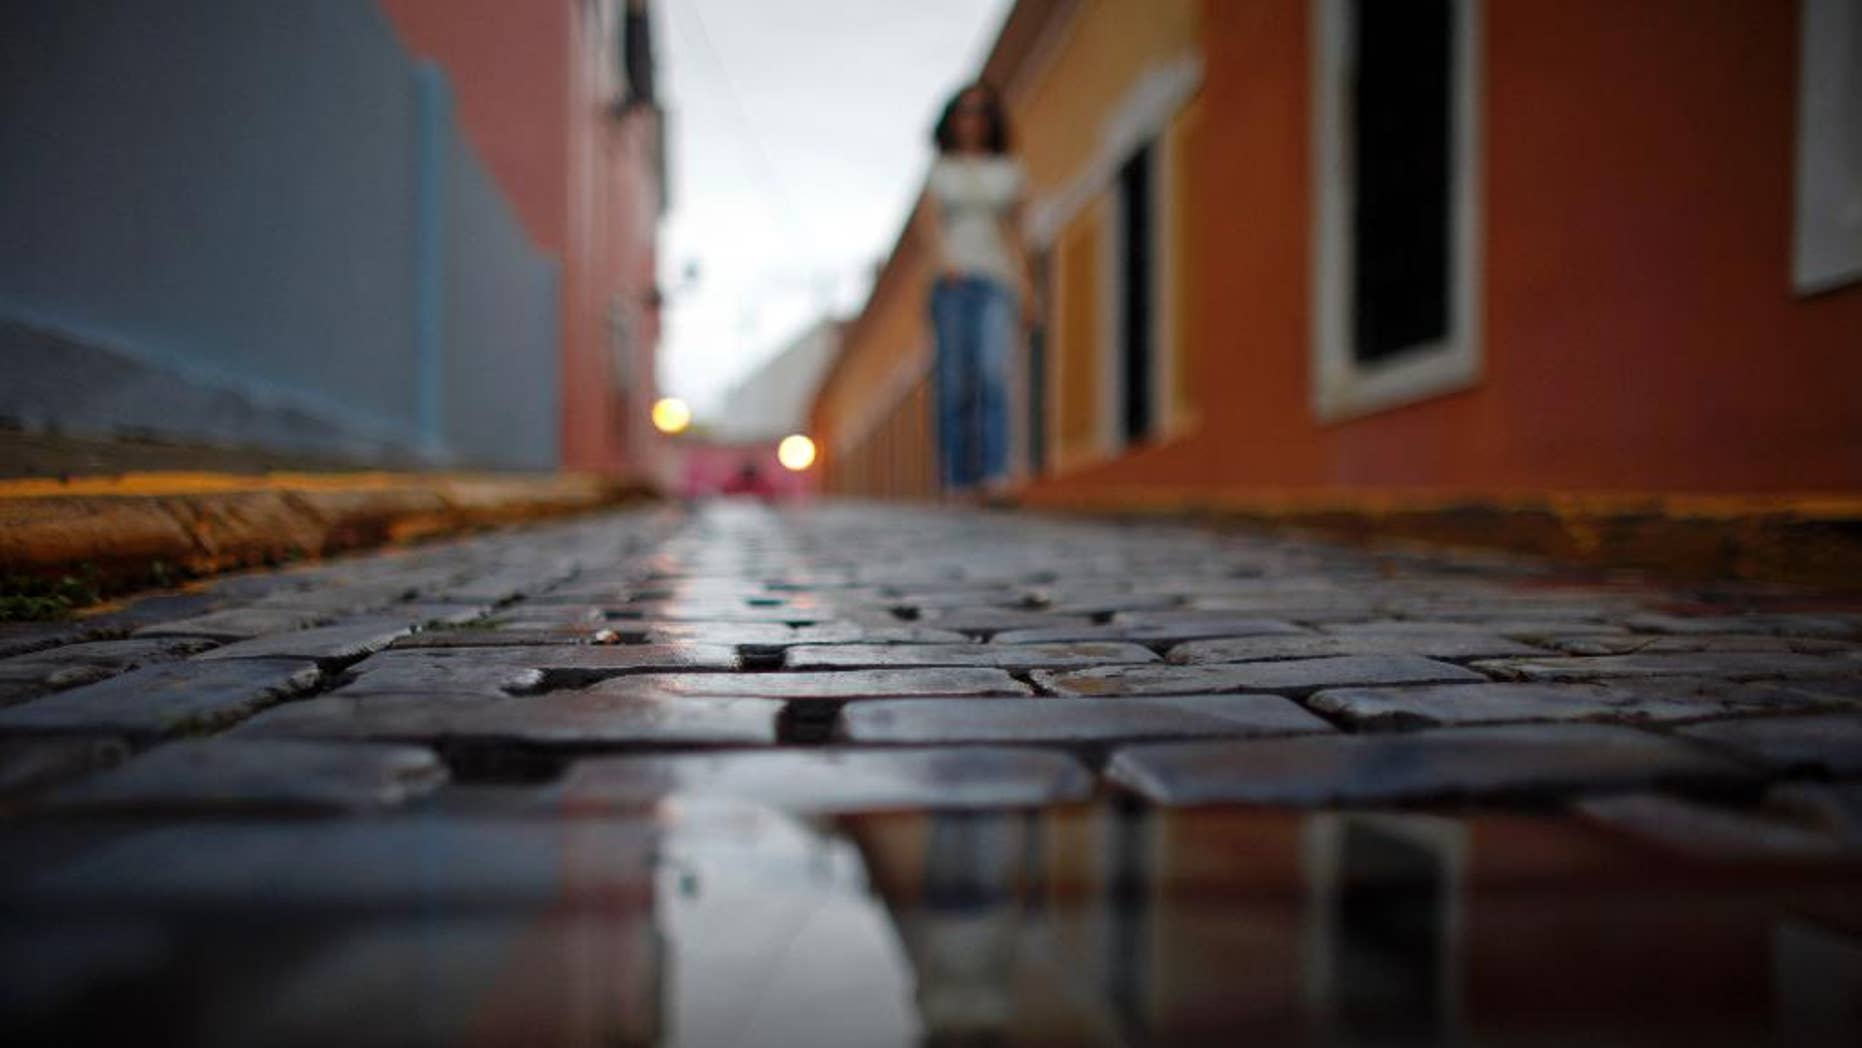 Wet cobblestones are seen on a street during a rainy day in Old San Juan, Puerto Rico, Tuesday, Nov. 4, 2014. Heavy rains caused by a cluster of storms in the northern Caribbean killed at least seven people in Haiti and caused major flooding on Tuesday in the Dominican Republic and Puerto Rico, authorities said. (AP Photo/Ricardo Arduengo)